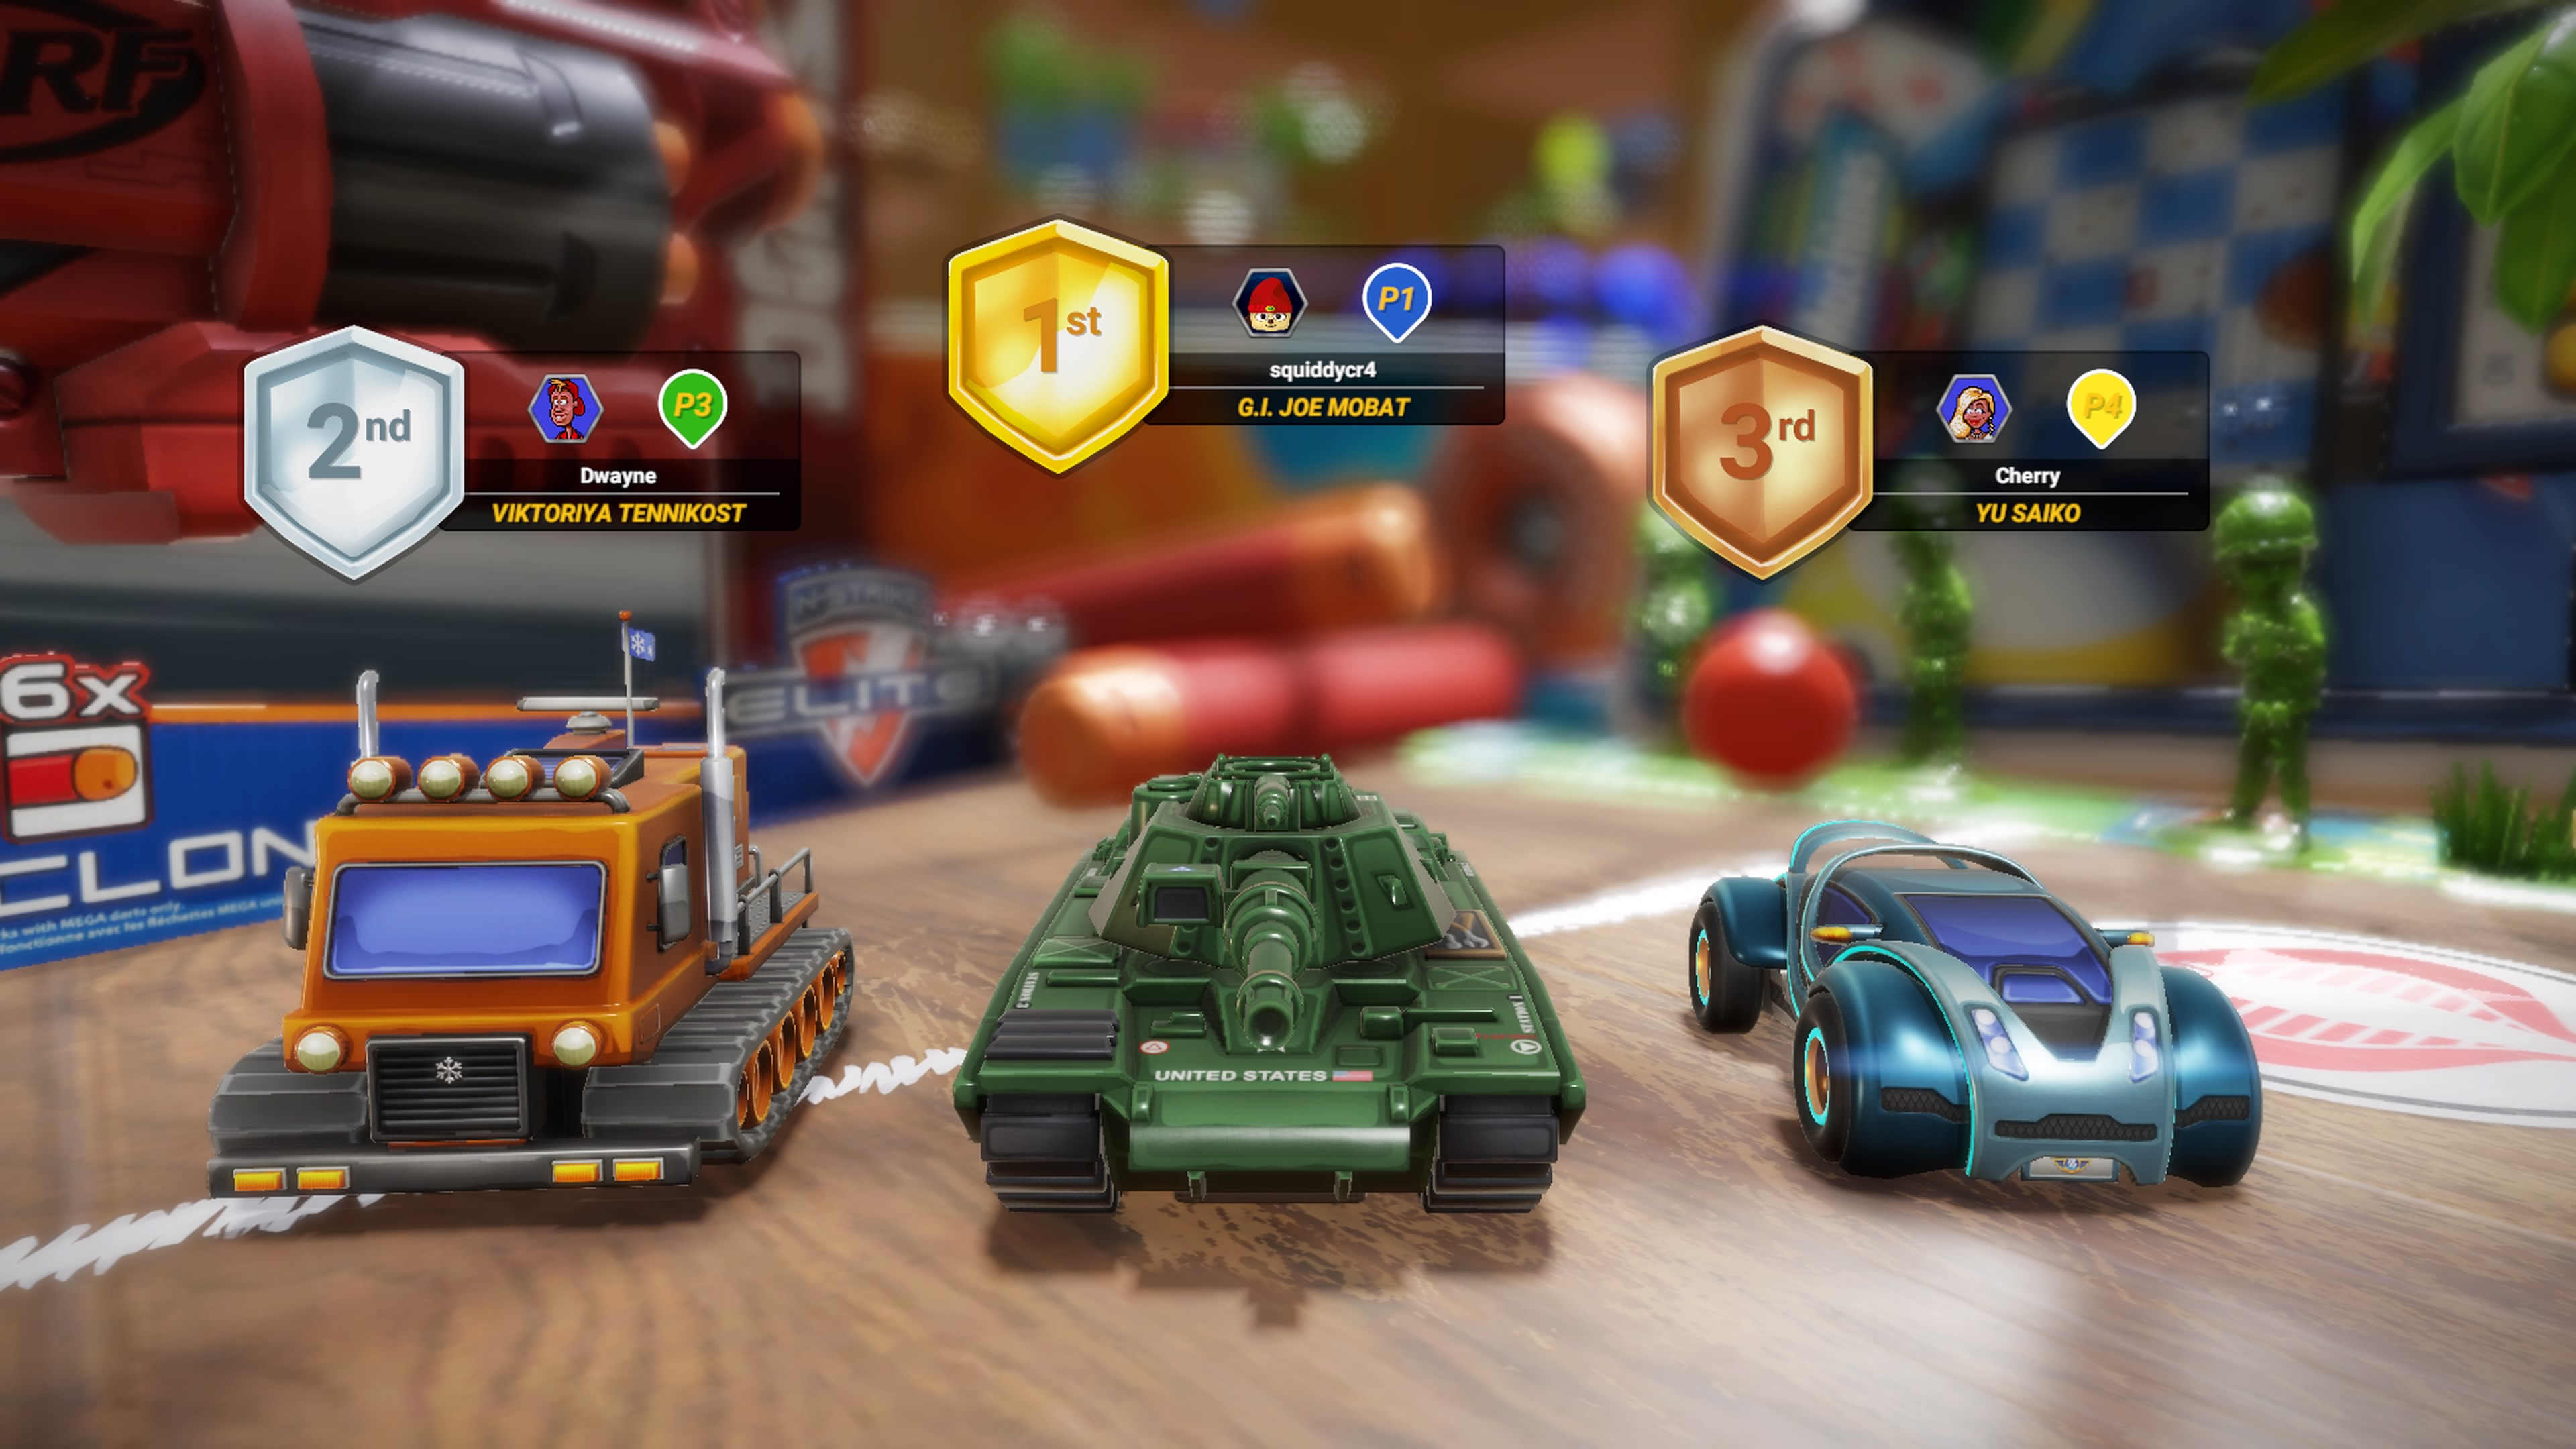 Micro Machines World Series – PS4 Review 30 Jun, 2017 in PS4 tagged driving / micro machines / nostalgia / racing / retro by Richie When it comes to top-down racing games, the original Micro Machines was, for the longest time, the standard to beat.